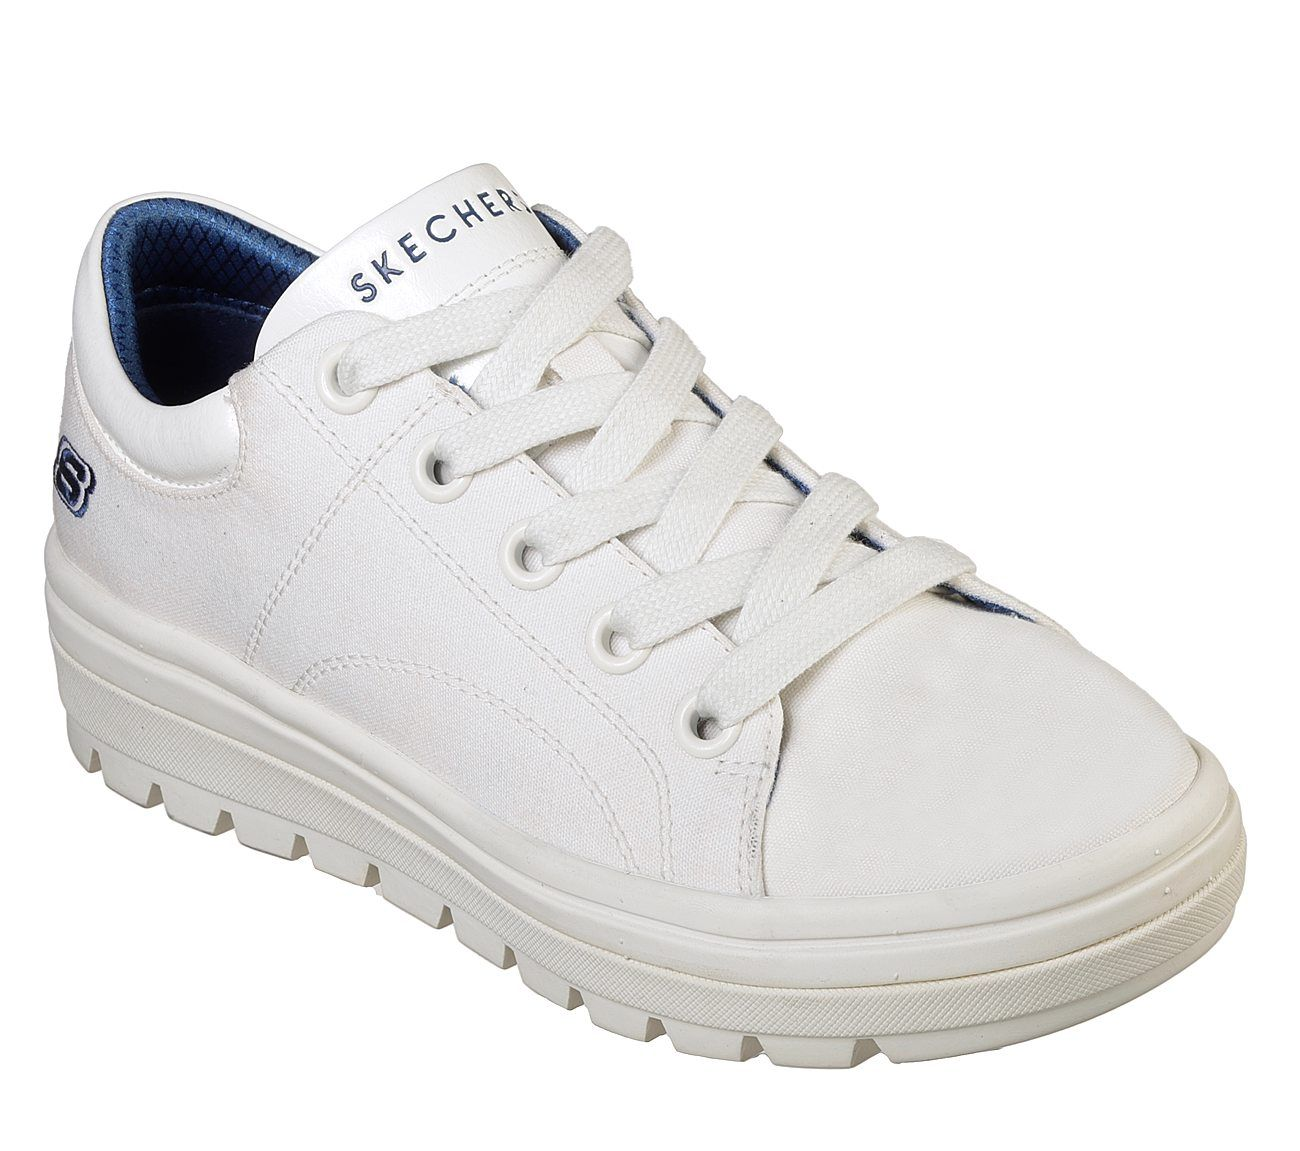 eac7a026f Buy SKECHERS Street Cleat - Bring It Back SKECHER Street Shoes only $55.00